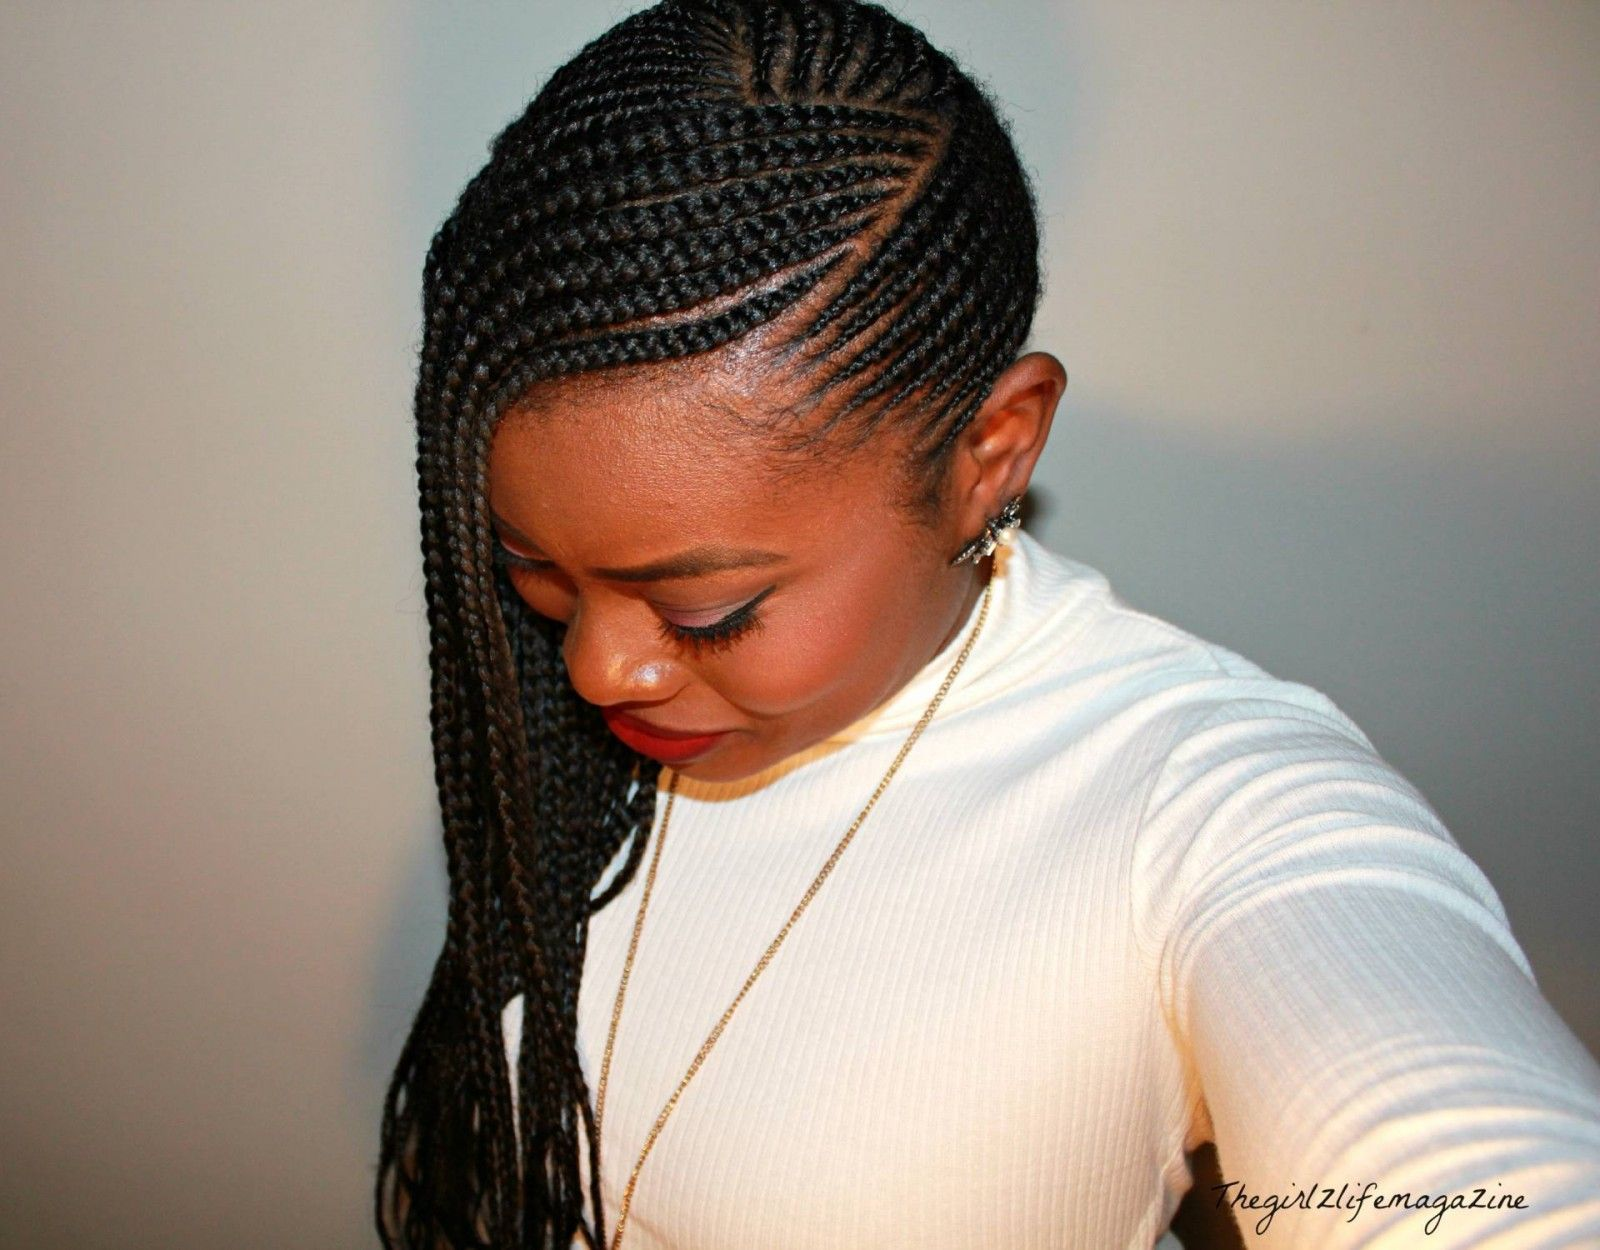 Coiffure Africaine Les Nattes Cornrows Braids Pinterest Coiffure Protectrice